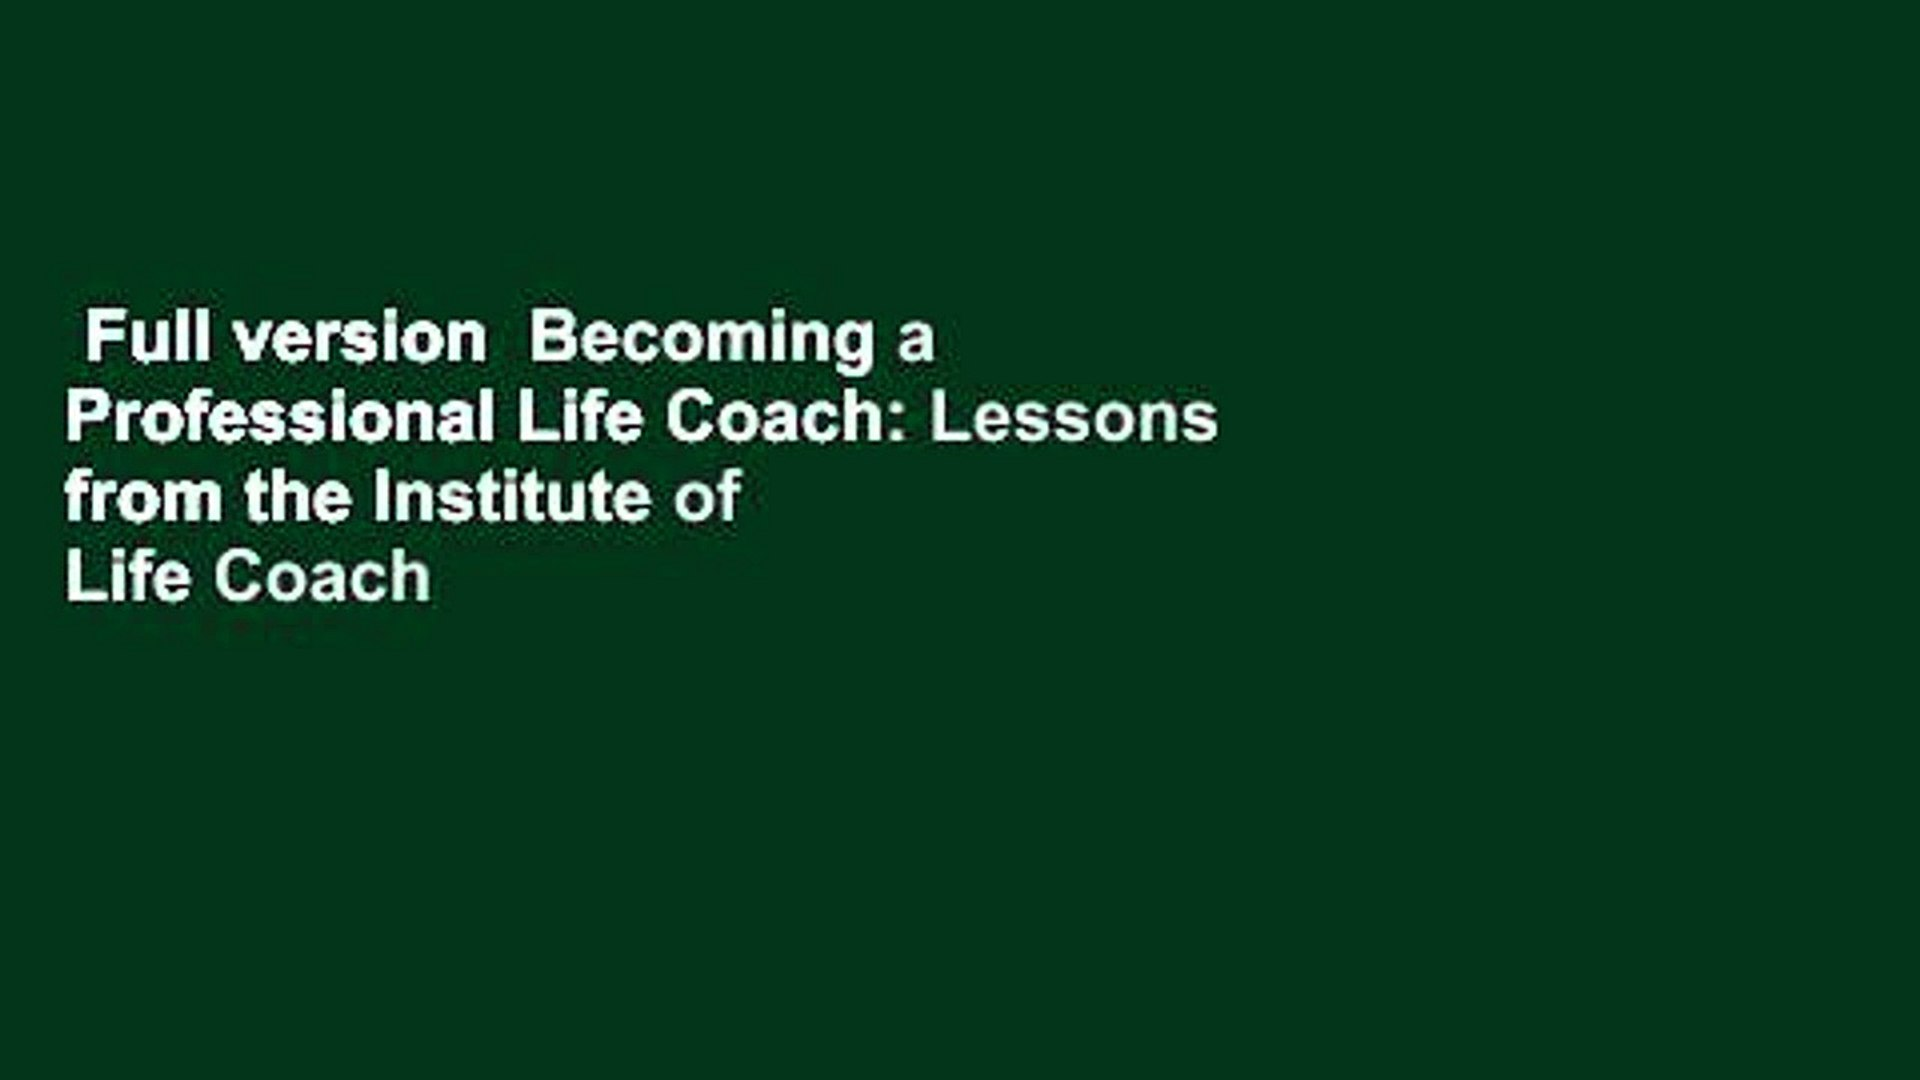 Full version  Becoming a Professional Life Coach: Lessons from the Institute of Life Coach